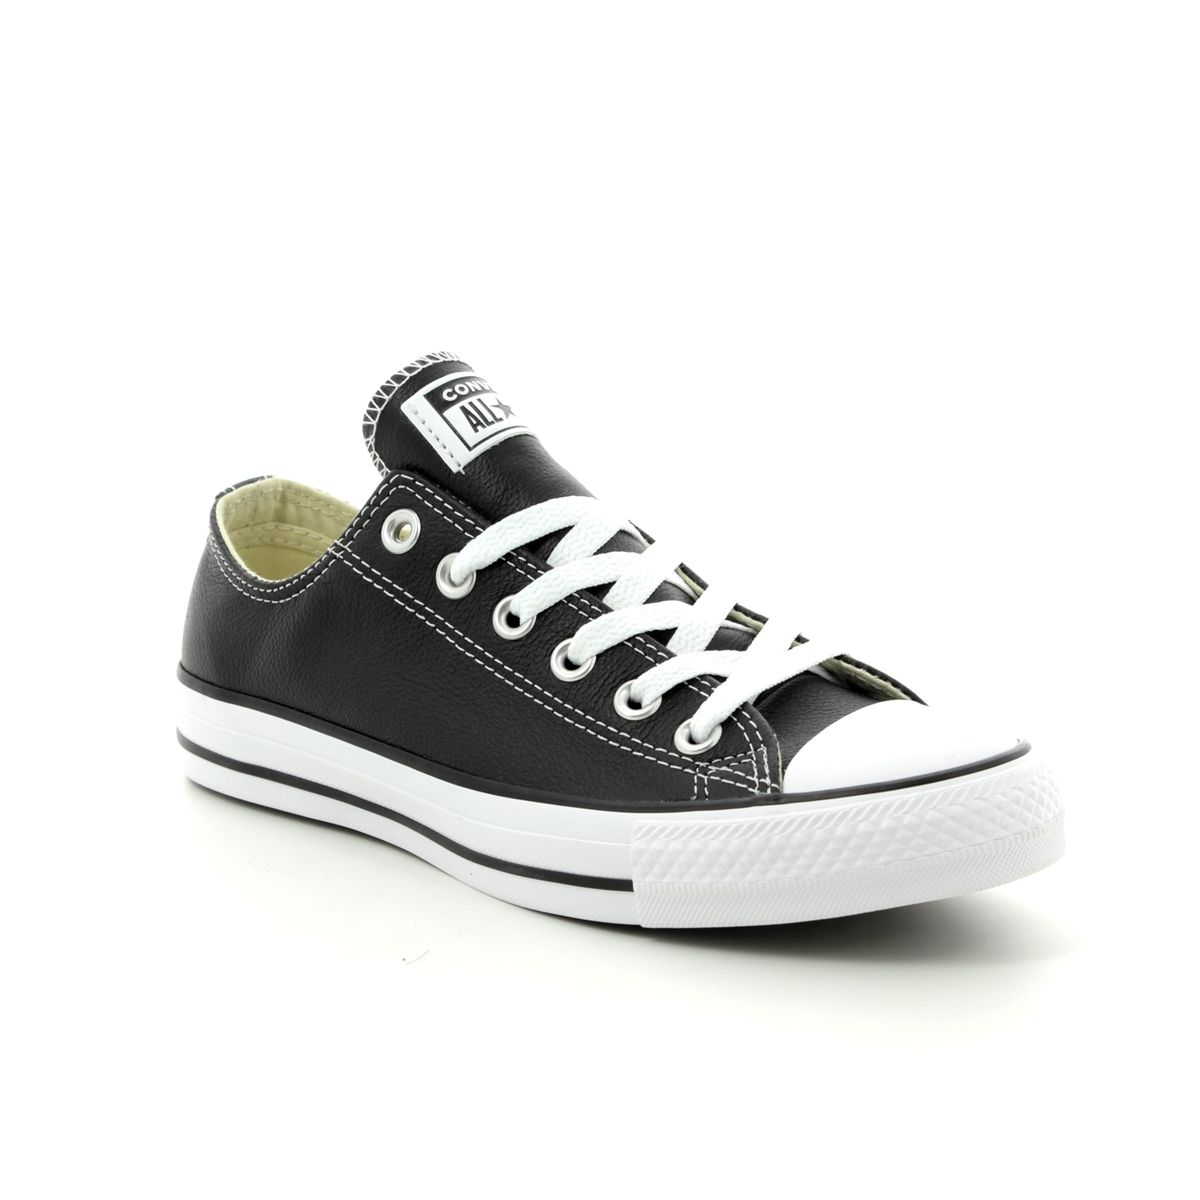 13c0643b826c36 Converse Trainers - Black leather - 132174C ALLSTAR OX Leather